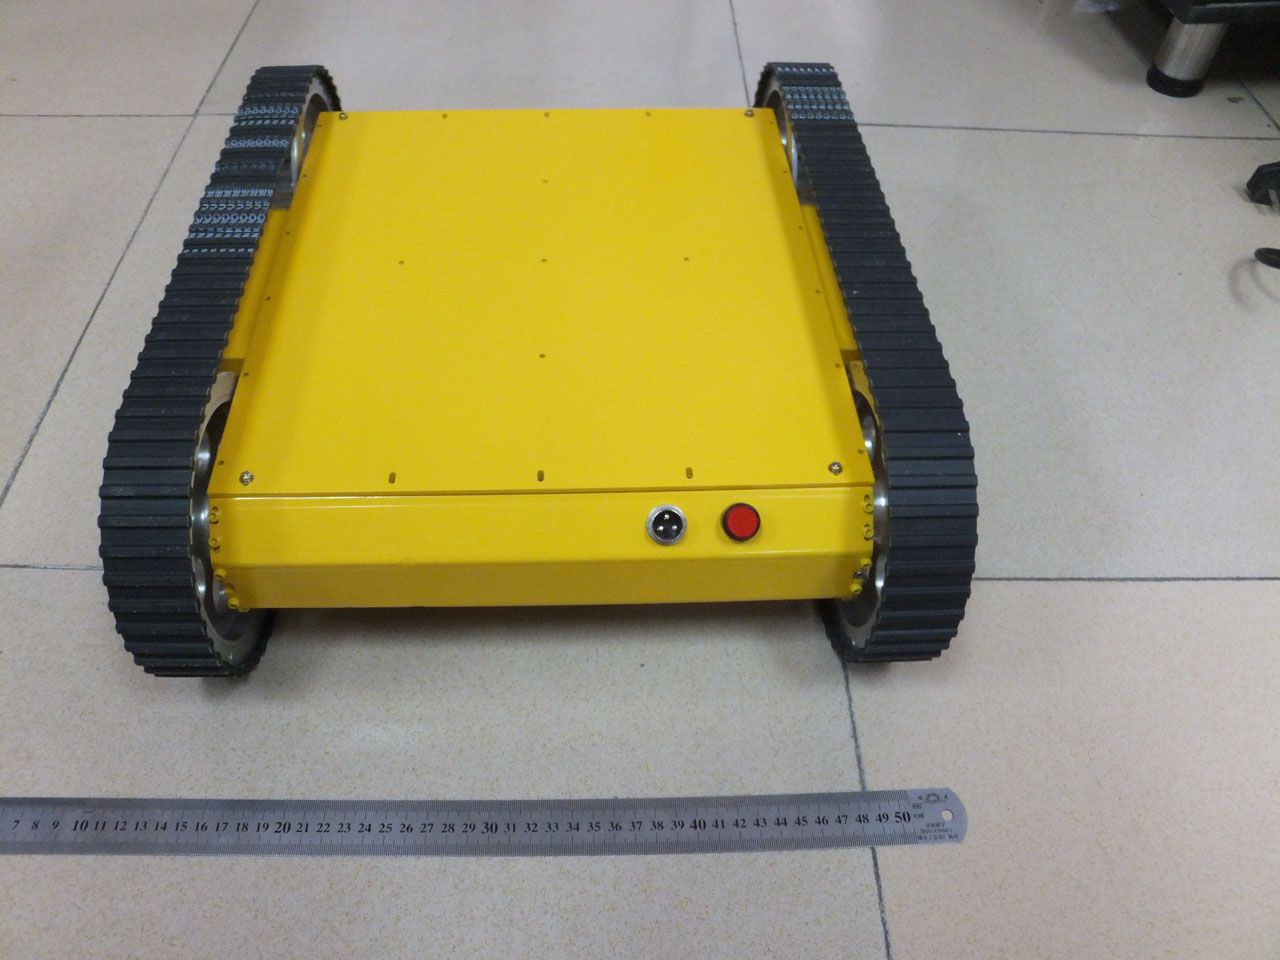 Heavy-duty-tracked-mobile-robot-tank-kit-3